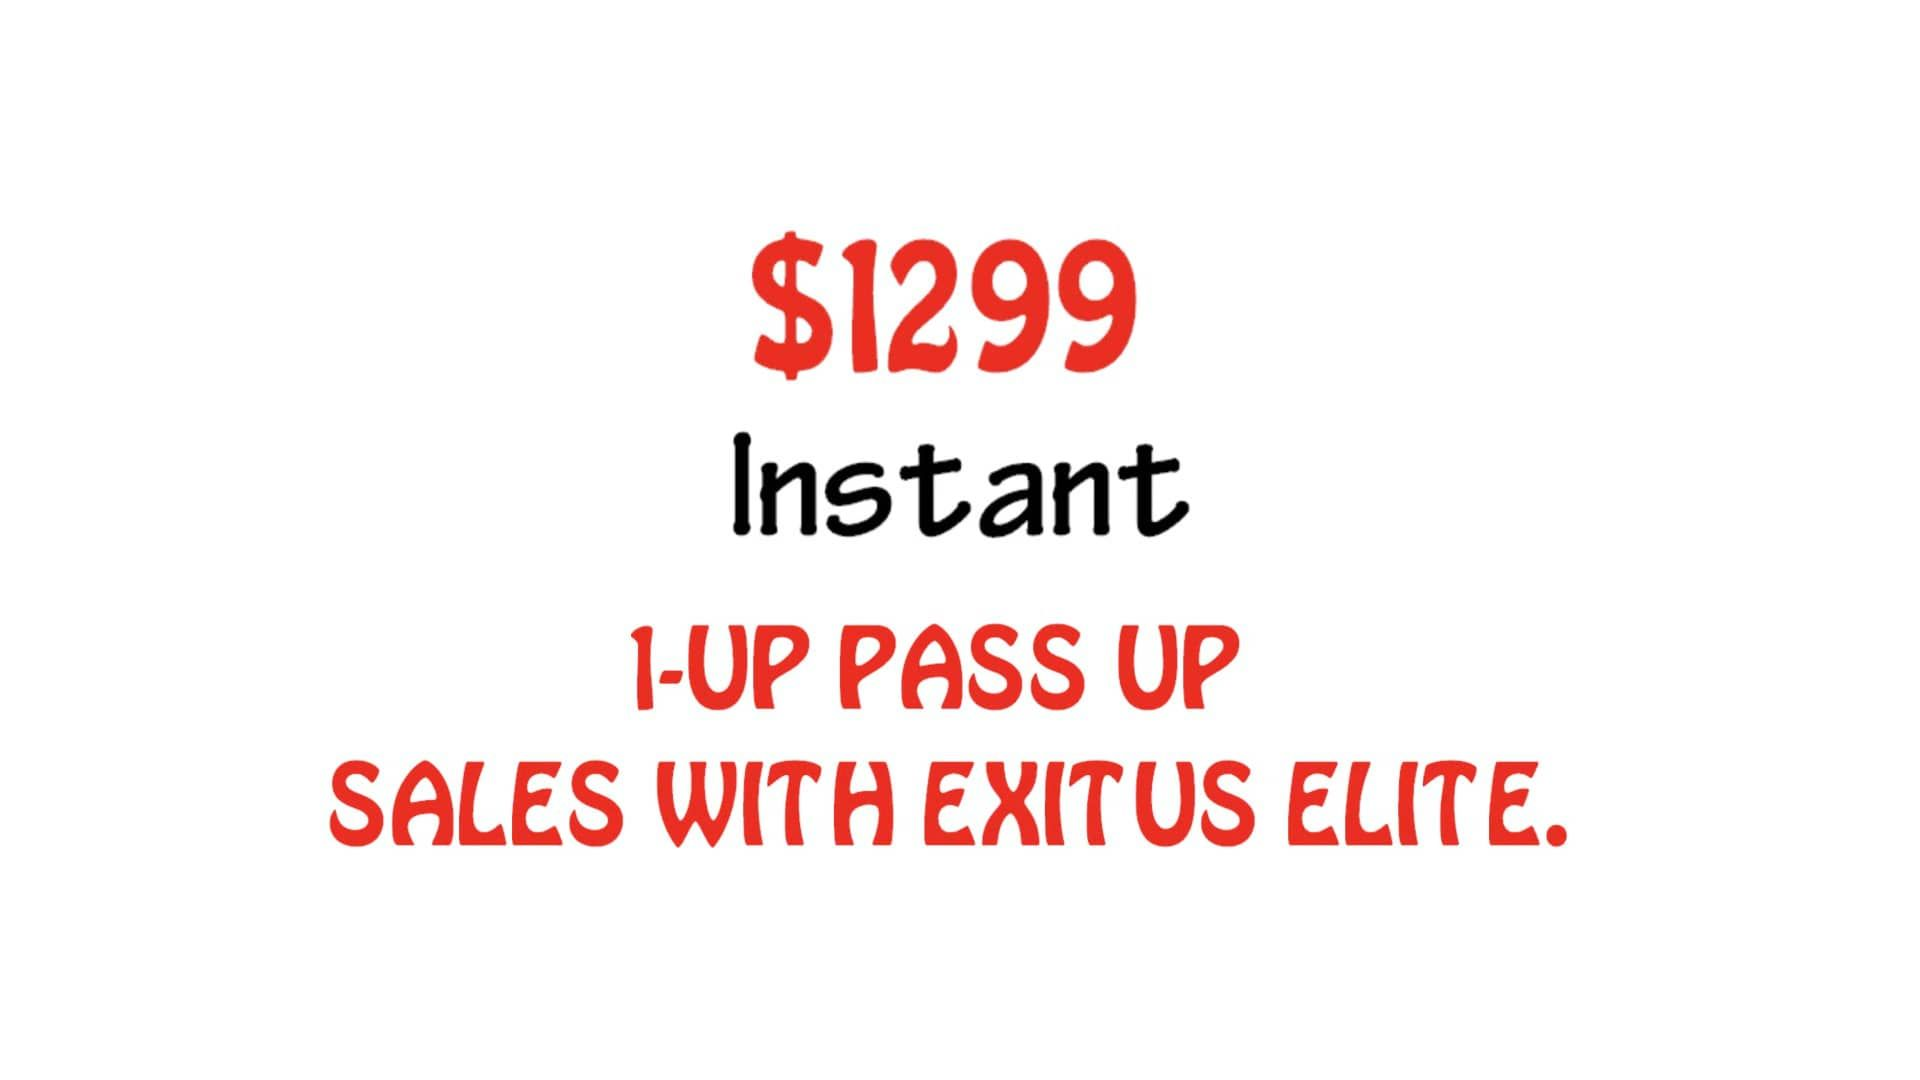 Exitus elite with images marketing campaigns residual